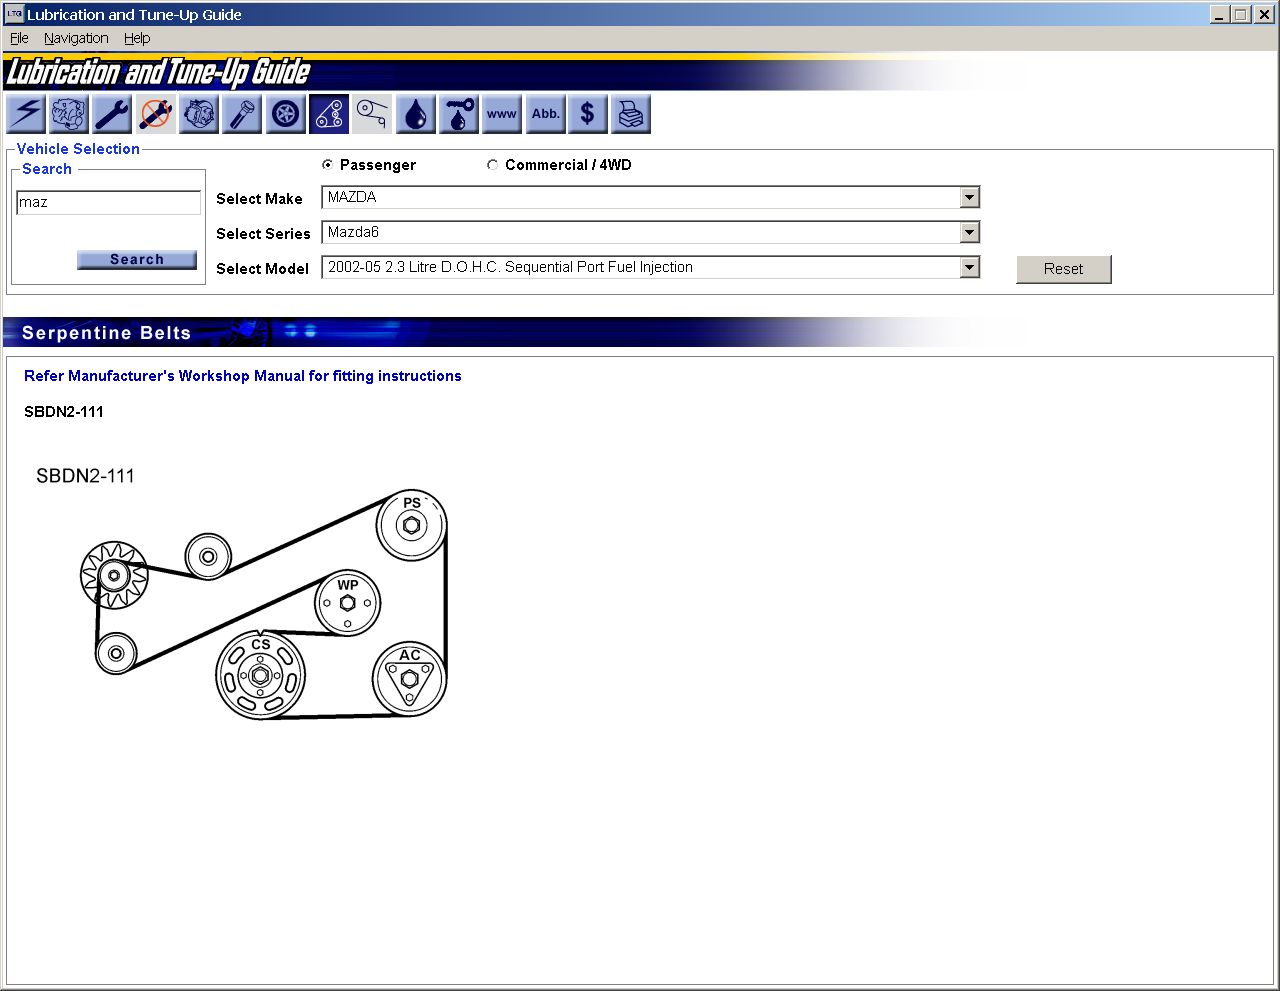 lube and tune up cd rh lubeandtune com au WD-40 Lubrication Guide Automotive Lubrication Guide